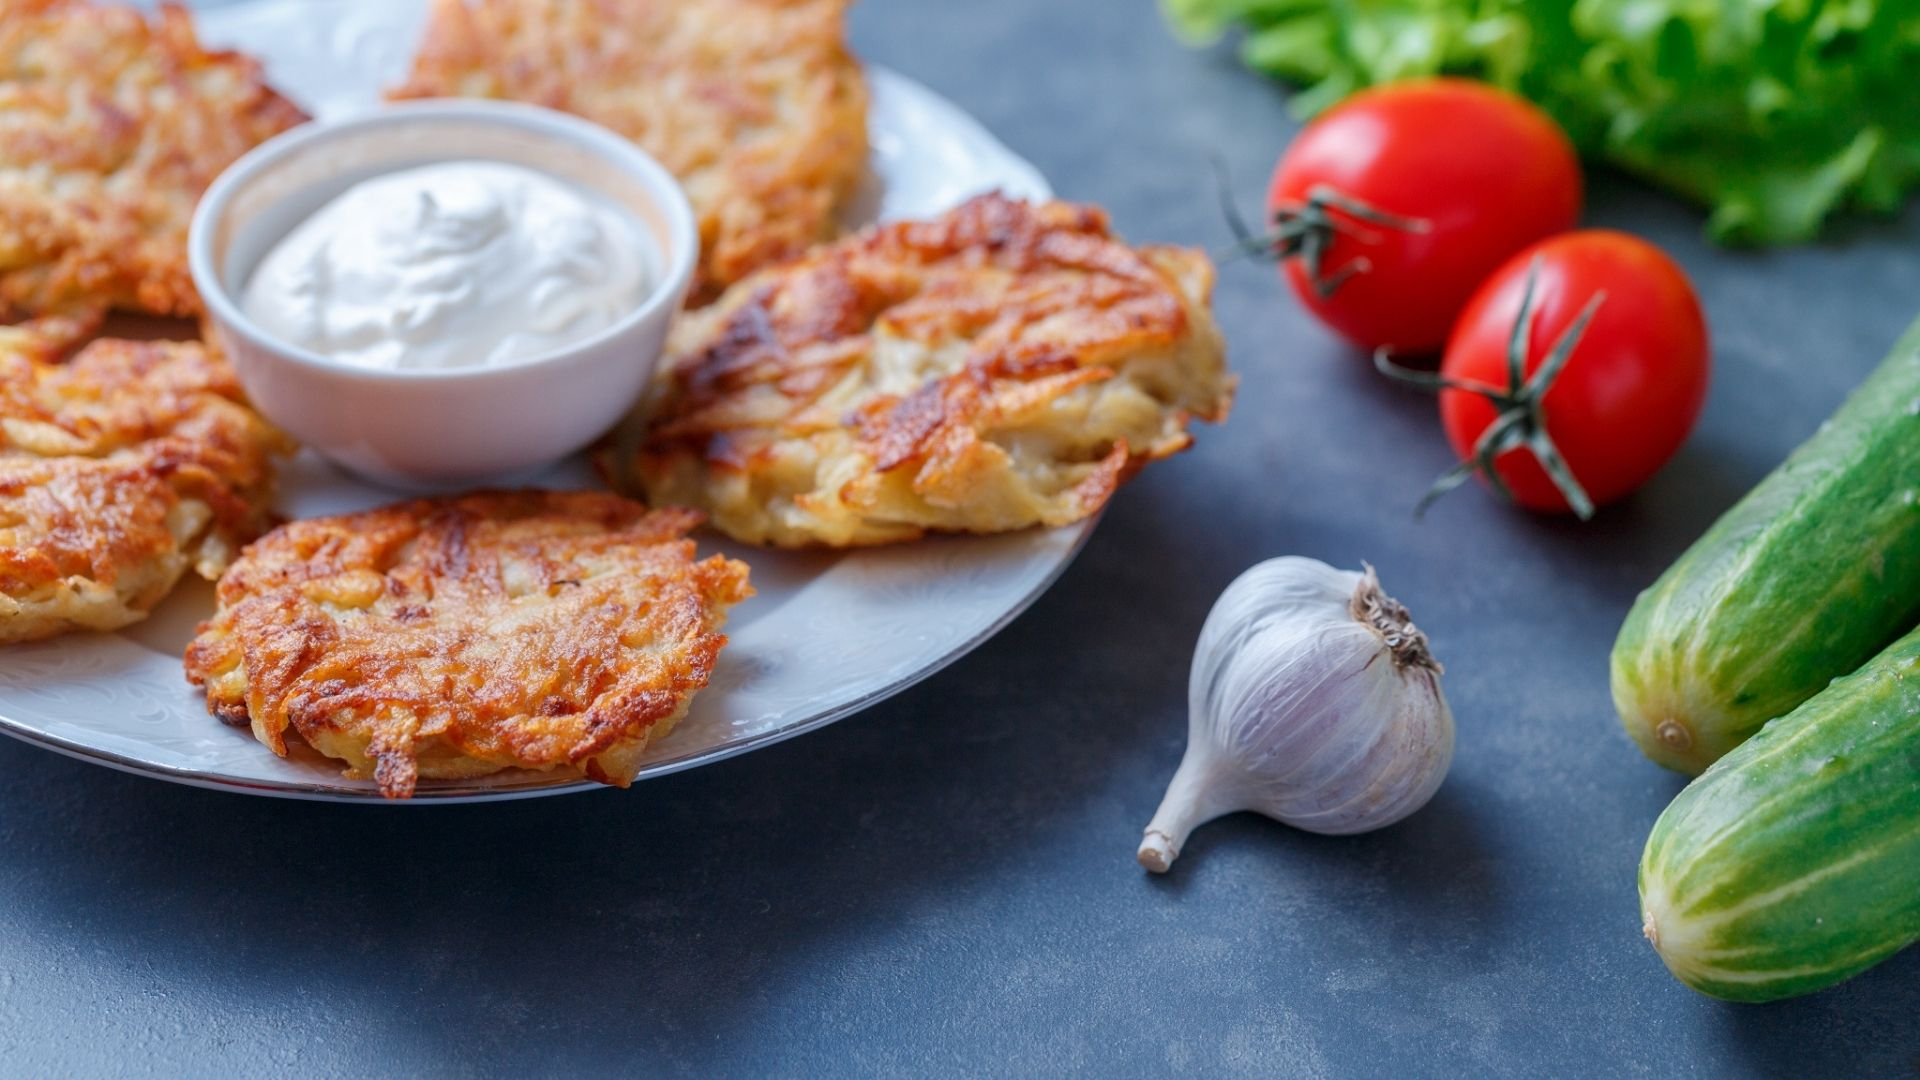 Featured image for Butternut Squash Fritters in a Toaster Oven Recipe